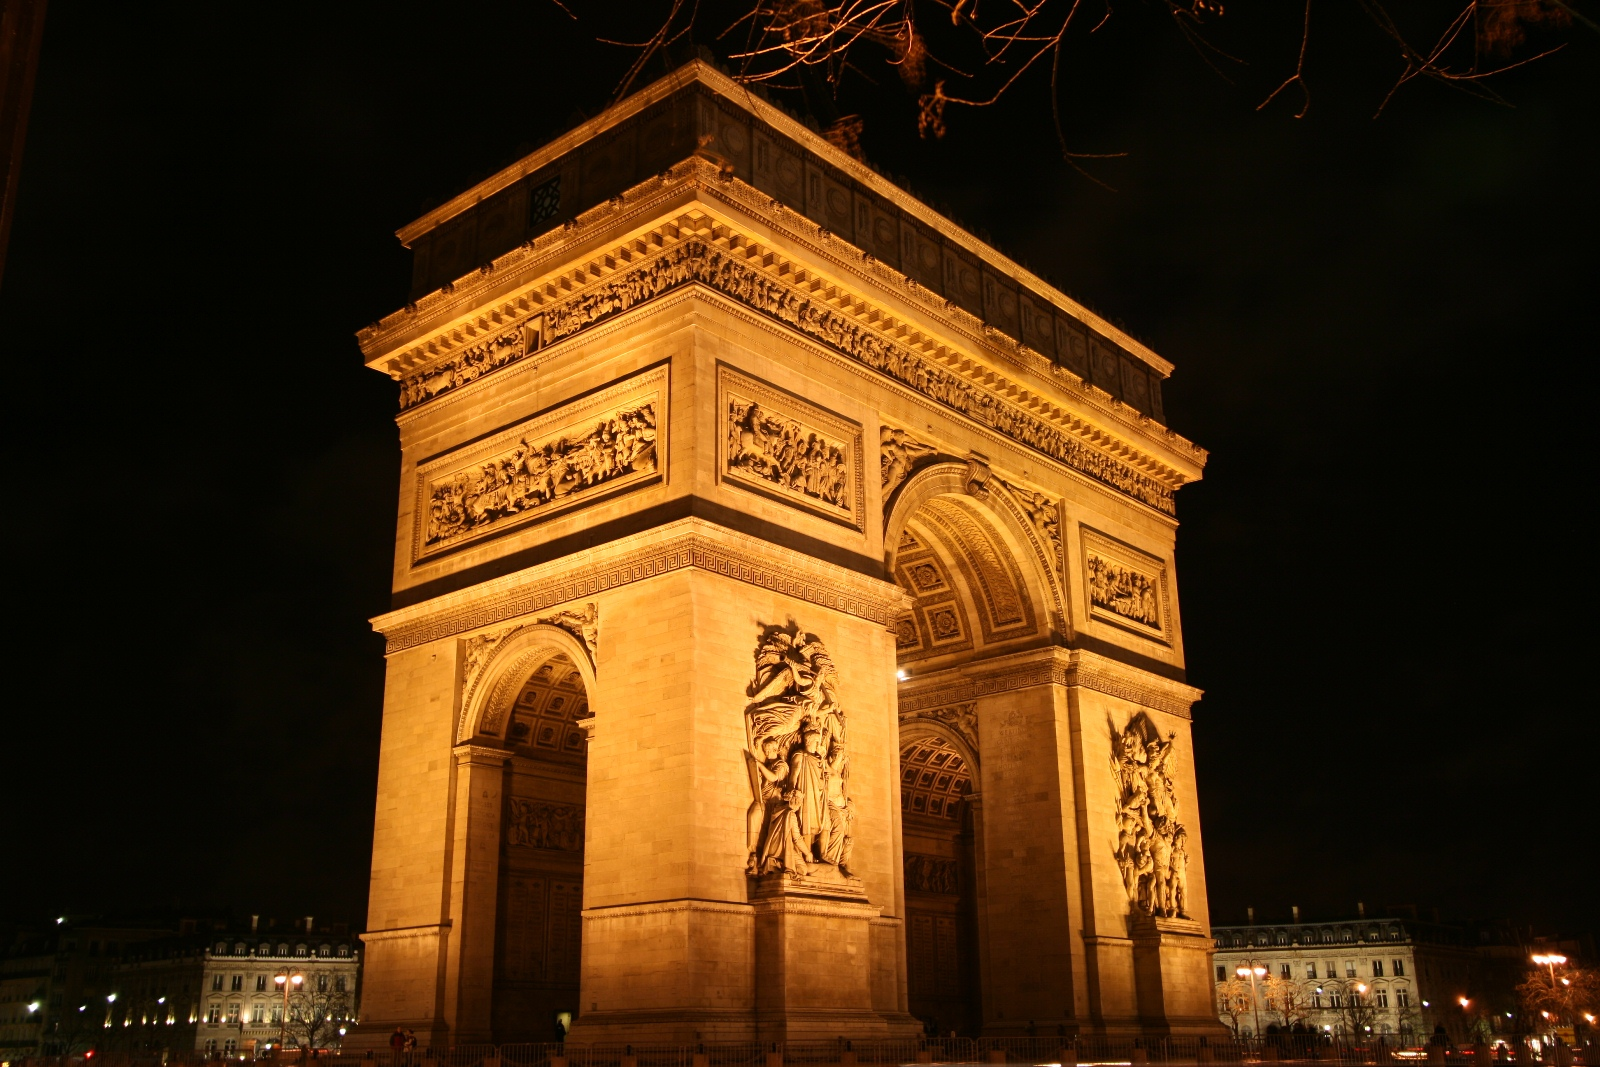 Arch of Triumphe, Paris, France, Night view